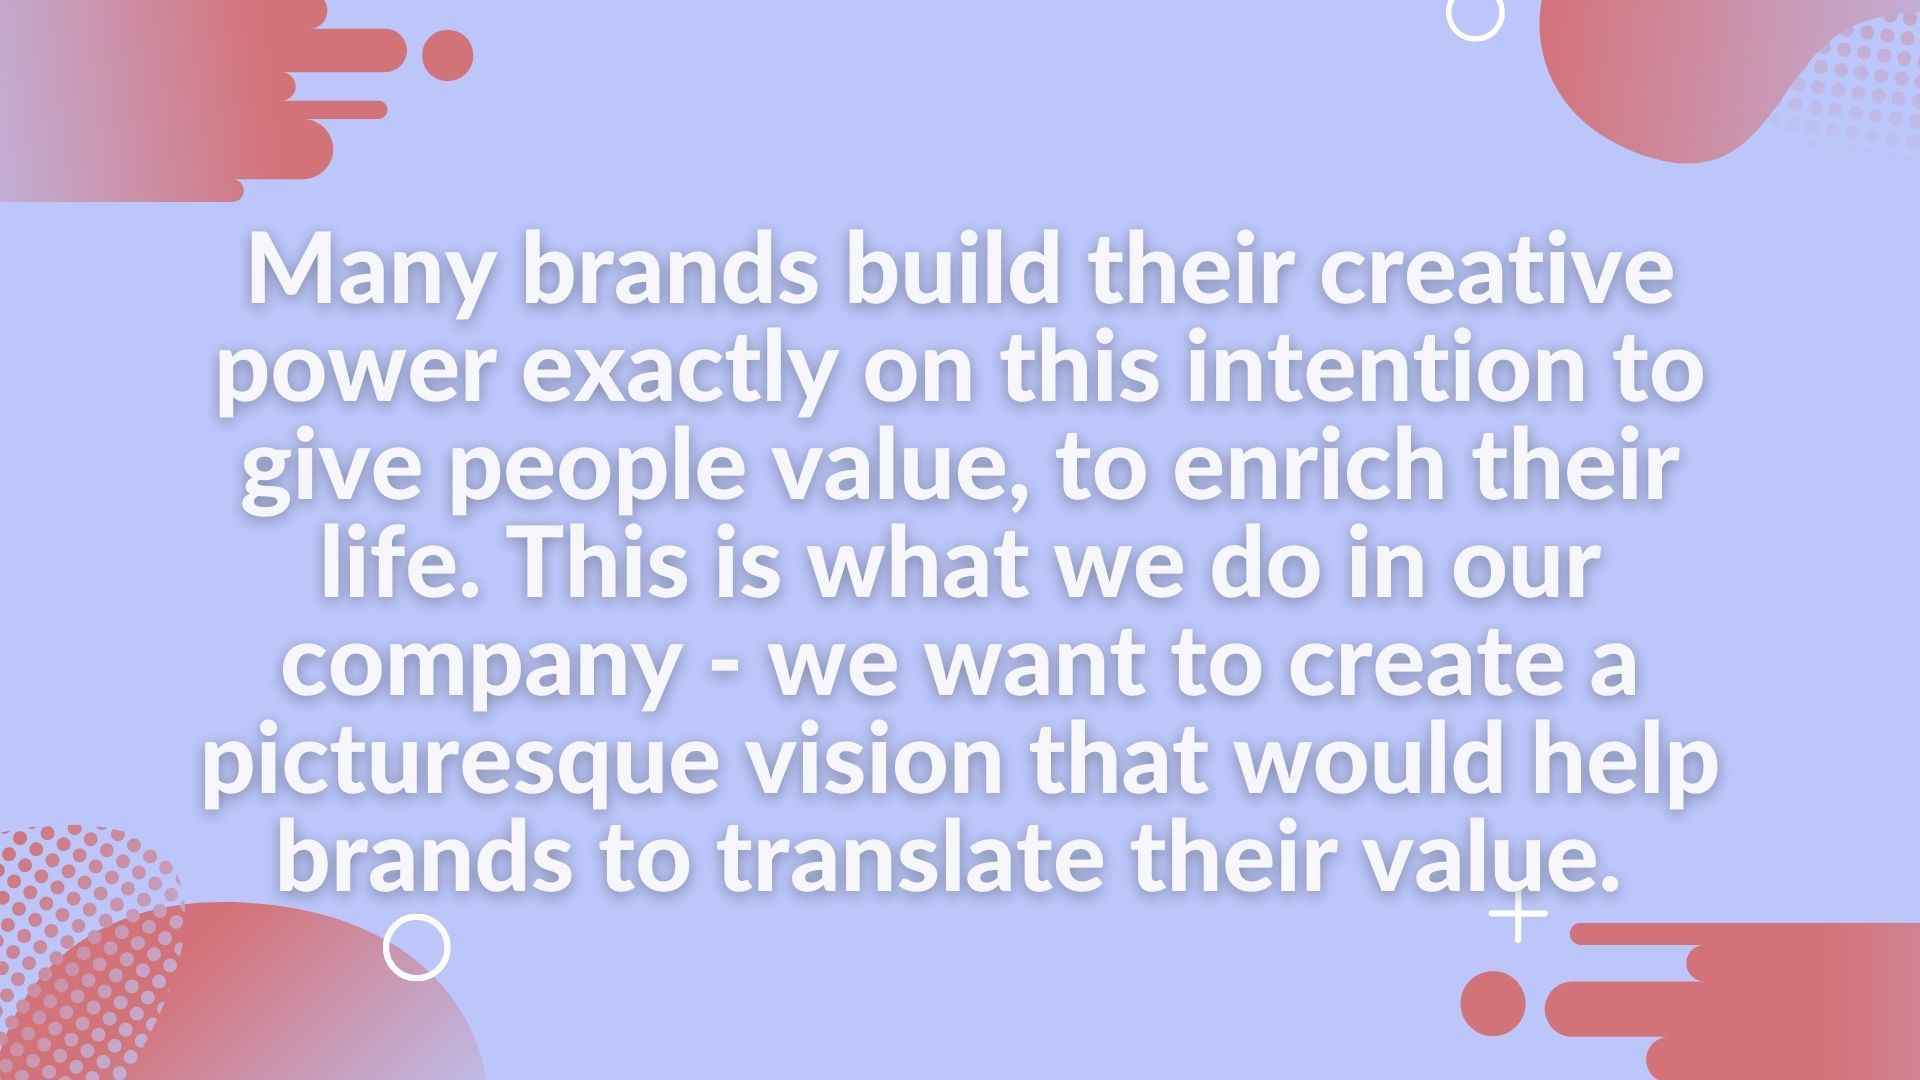 Darvideo wants to create a colorful vision that will help brands show their value